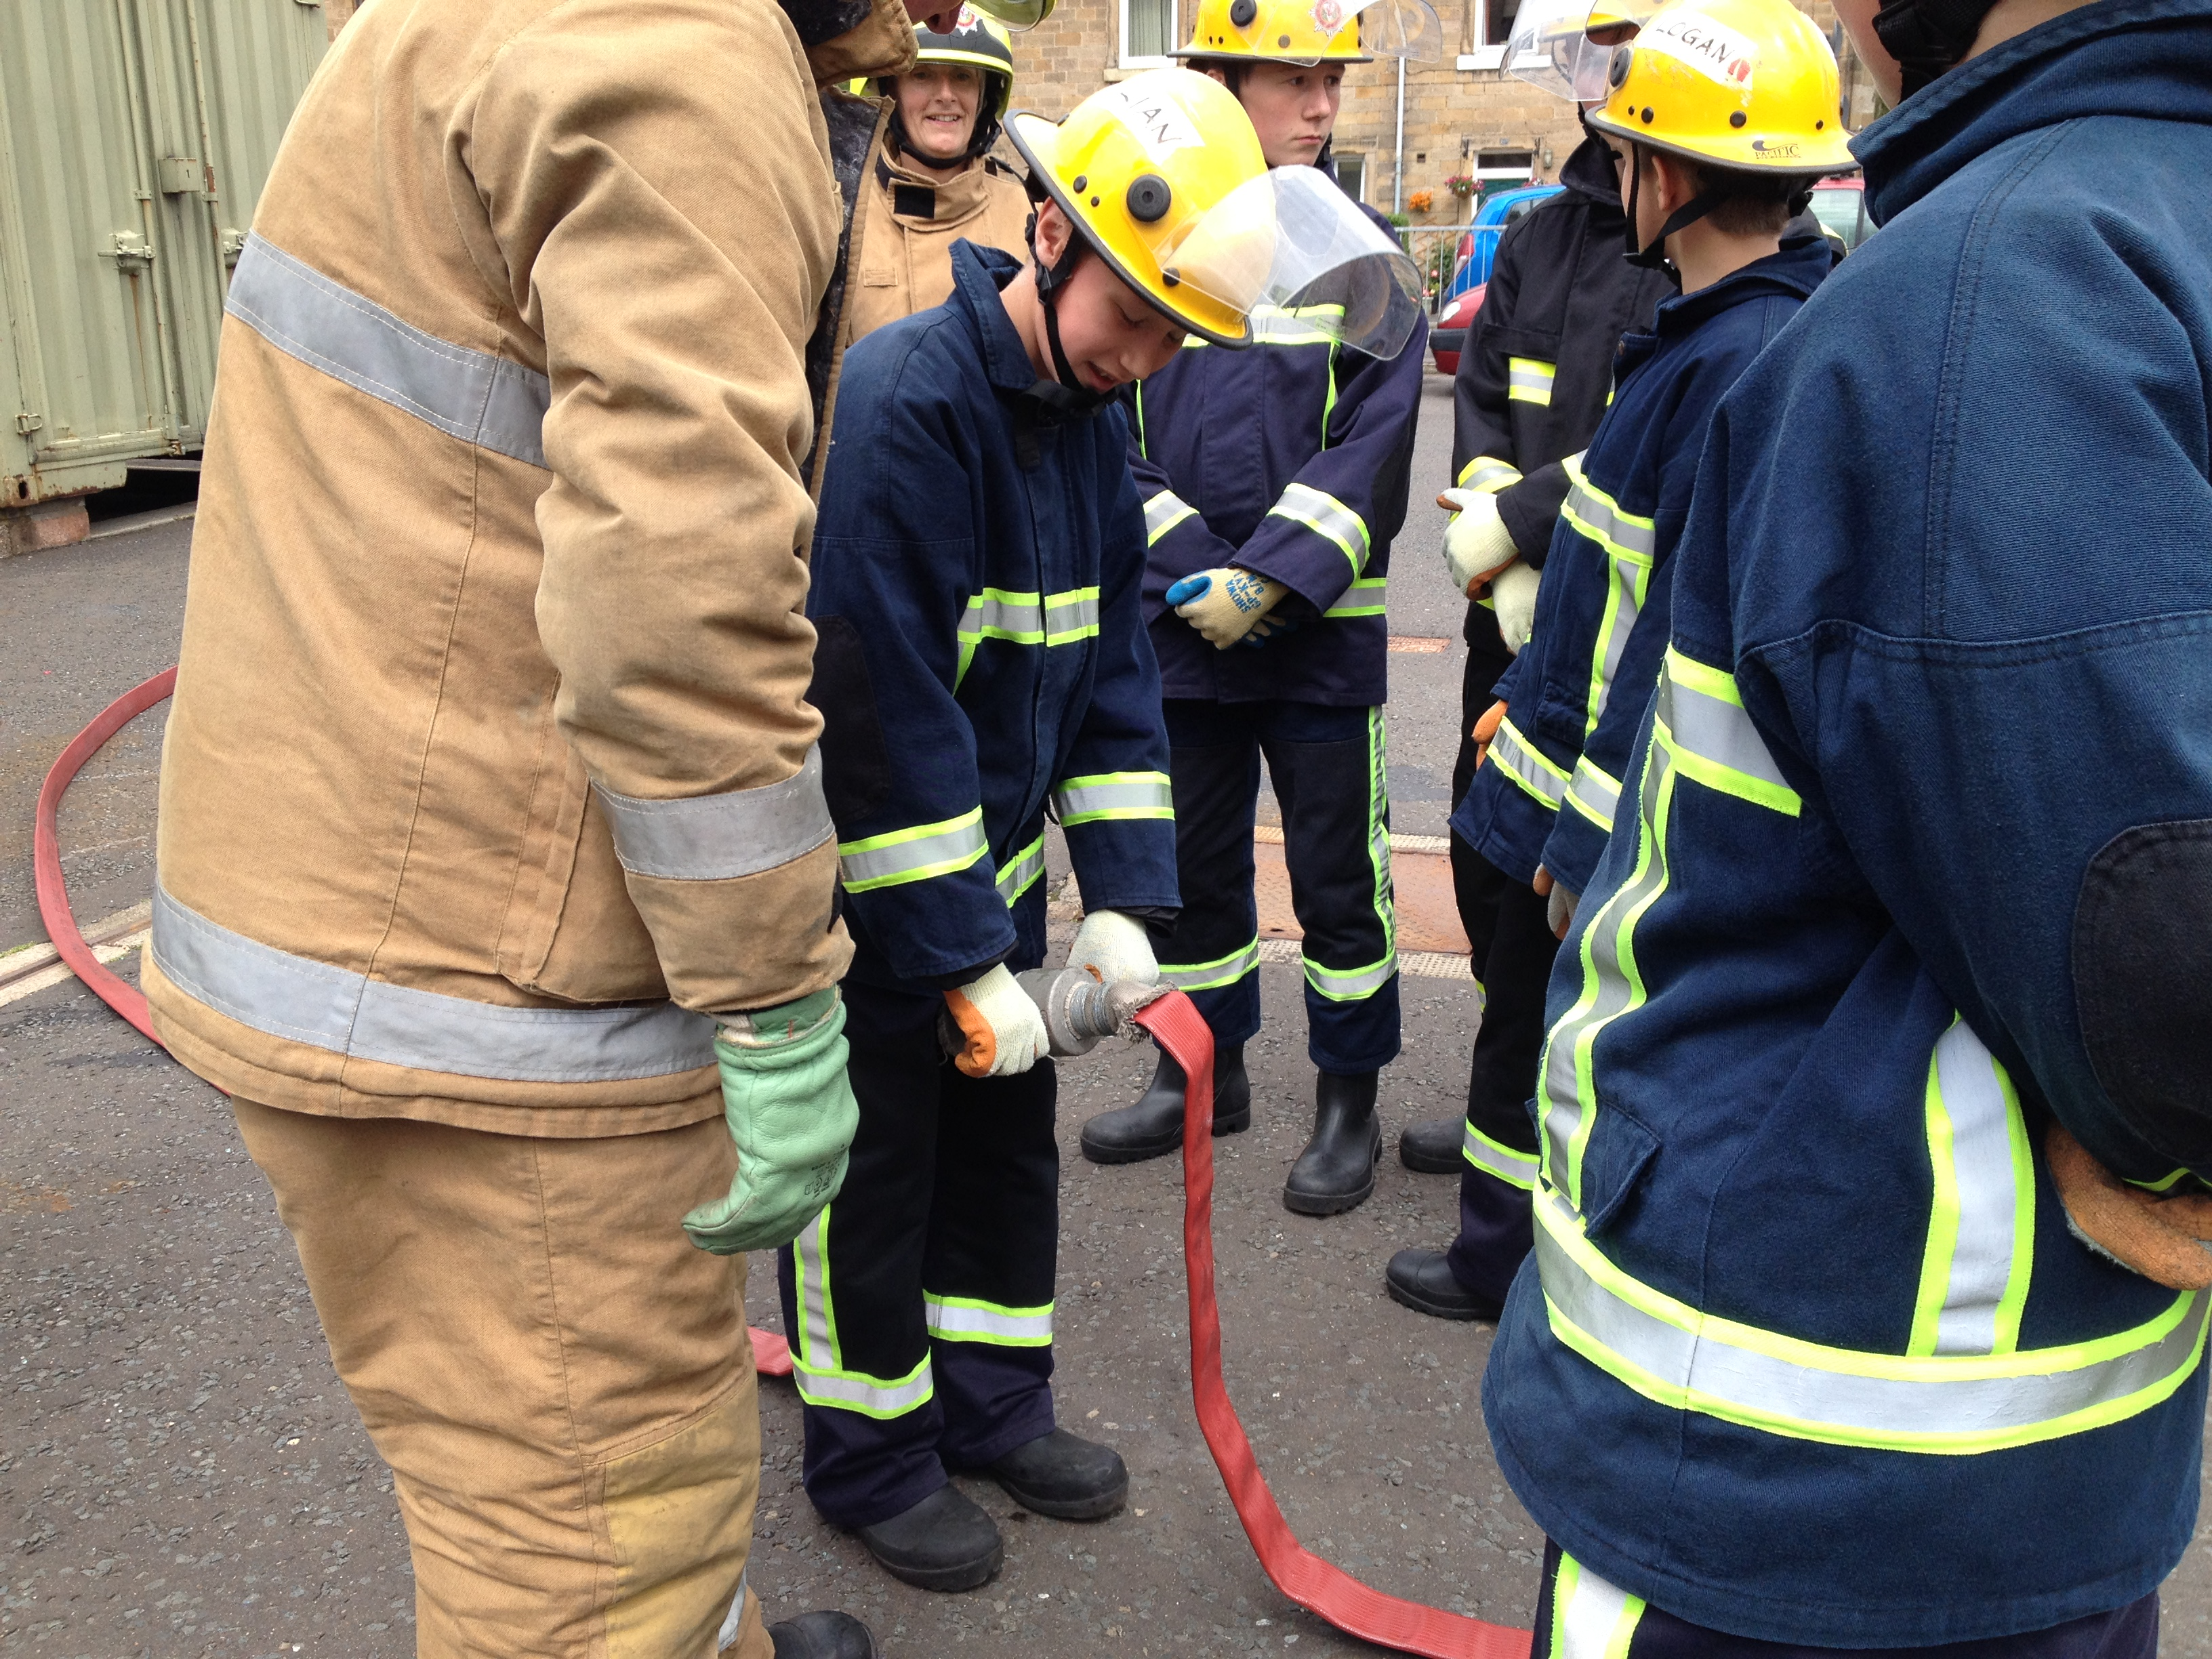 Firefighters in Galashiels take part in youth initiative